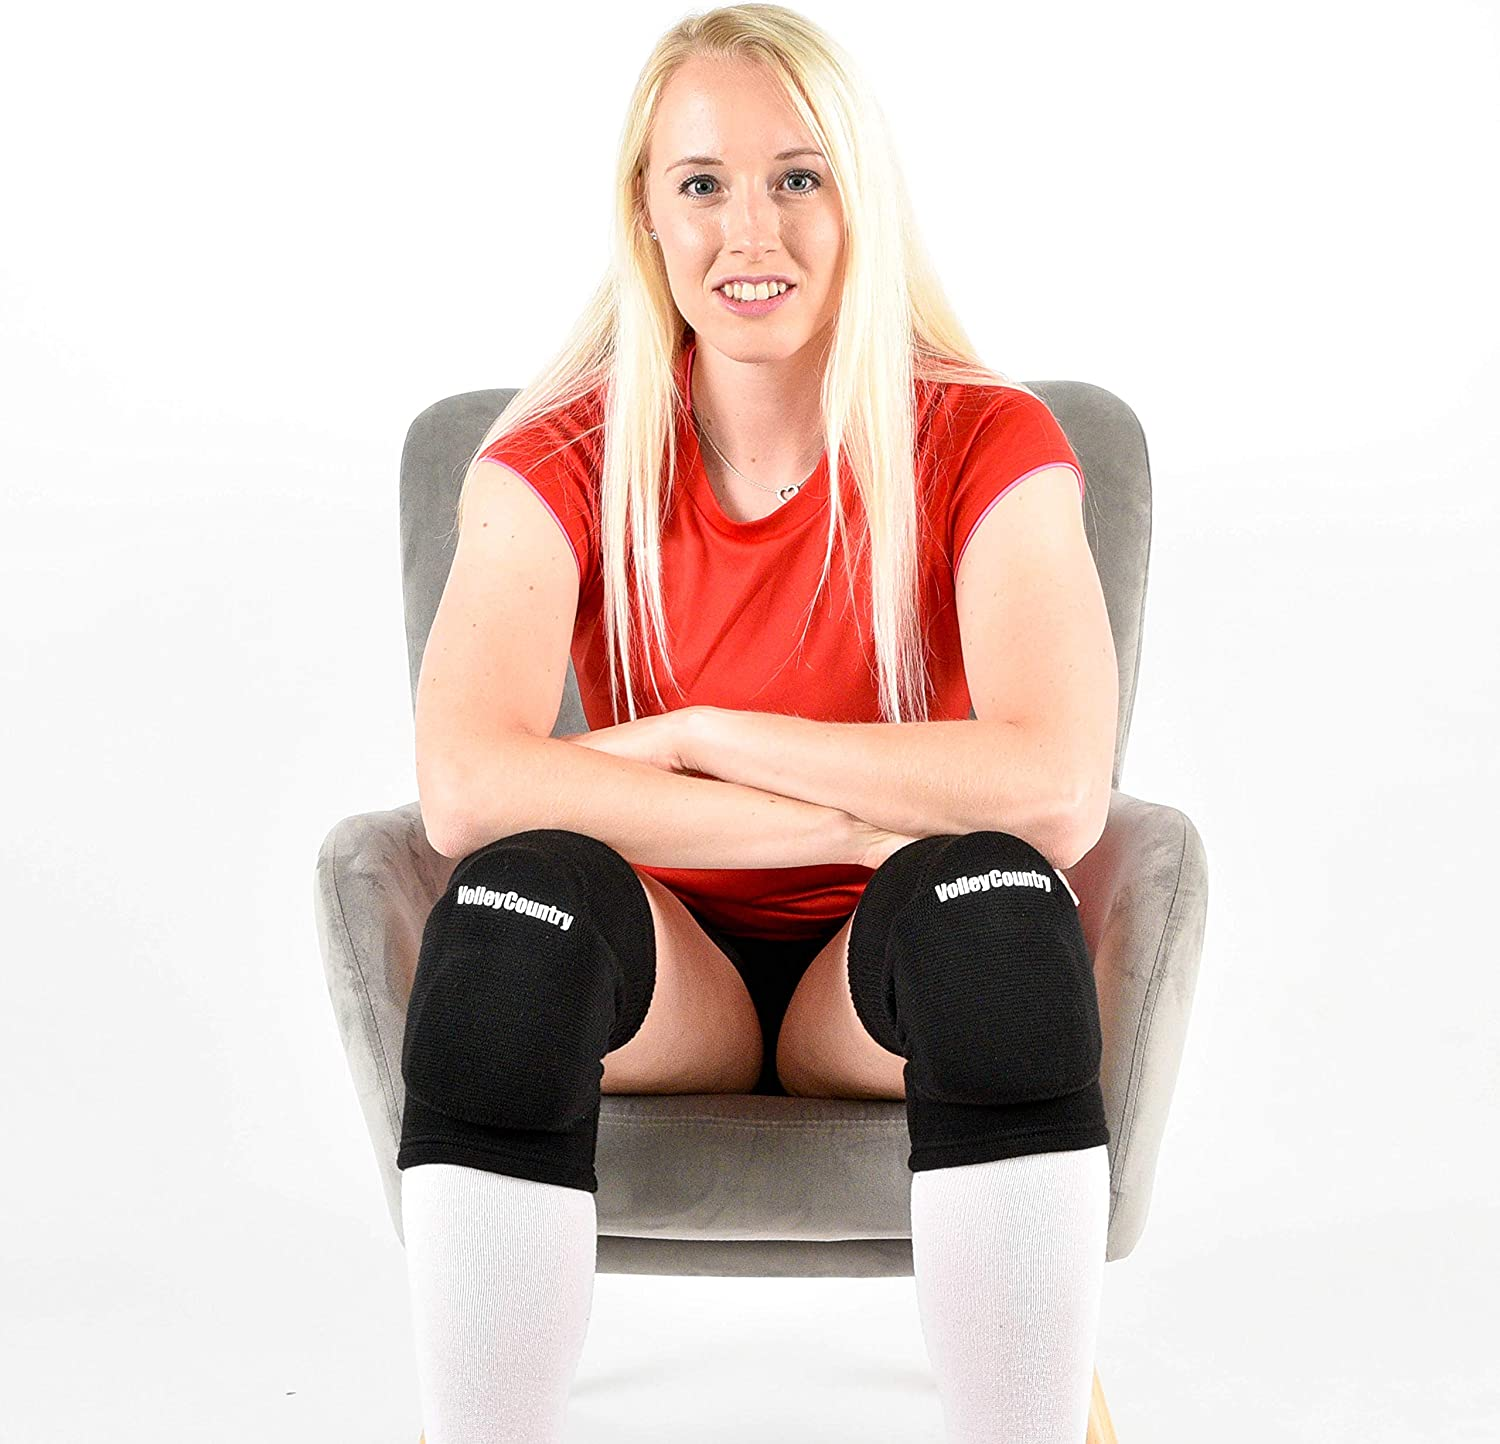 VolleyCountry Volleyball Knee Pads, 1 Pair, Superior Protection and Exceptional Comfort for Your Knees